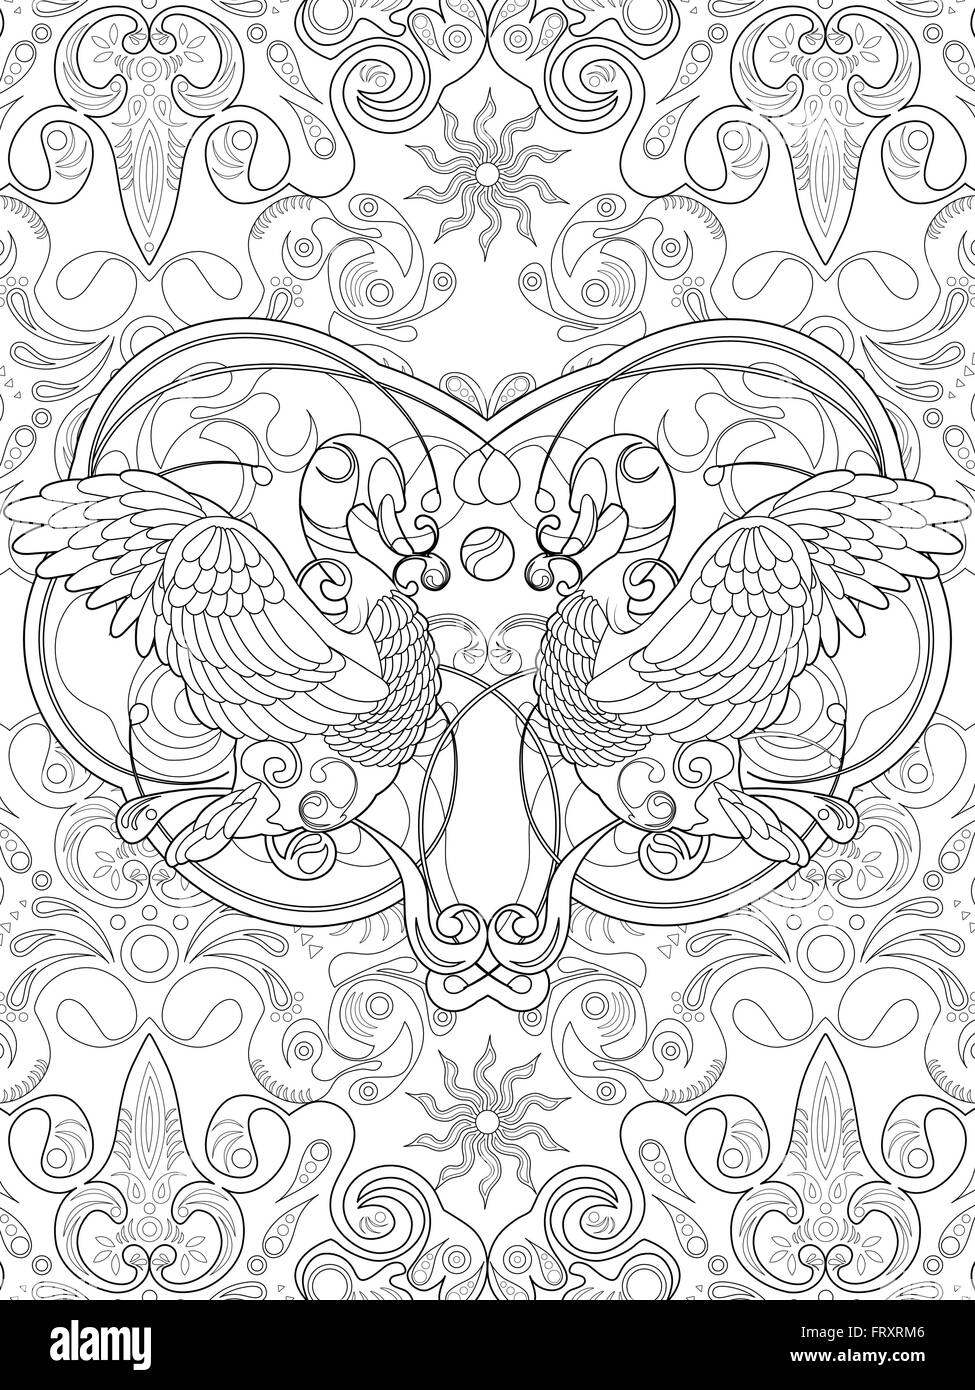 coloring pages background - Romeo.landinez.co